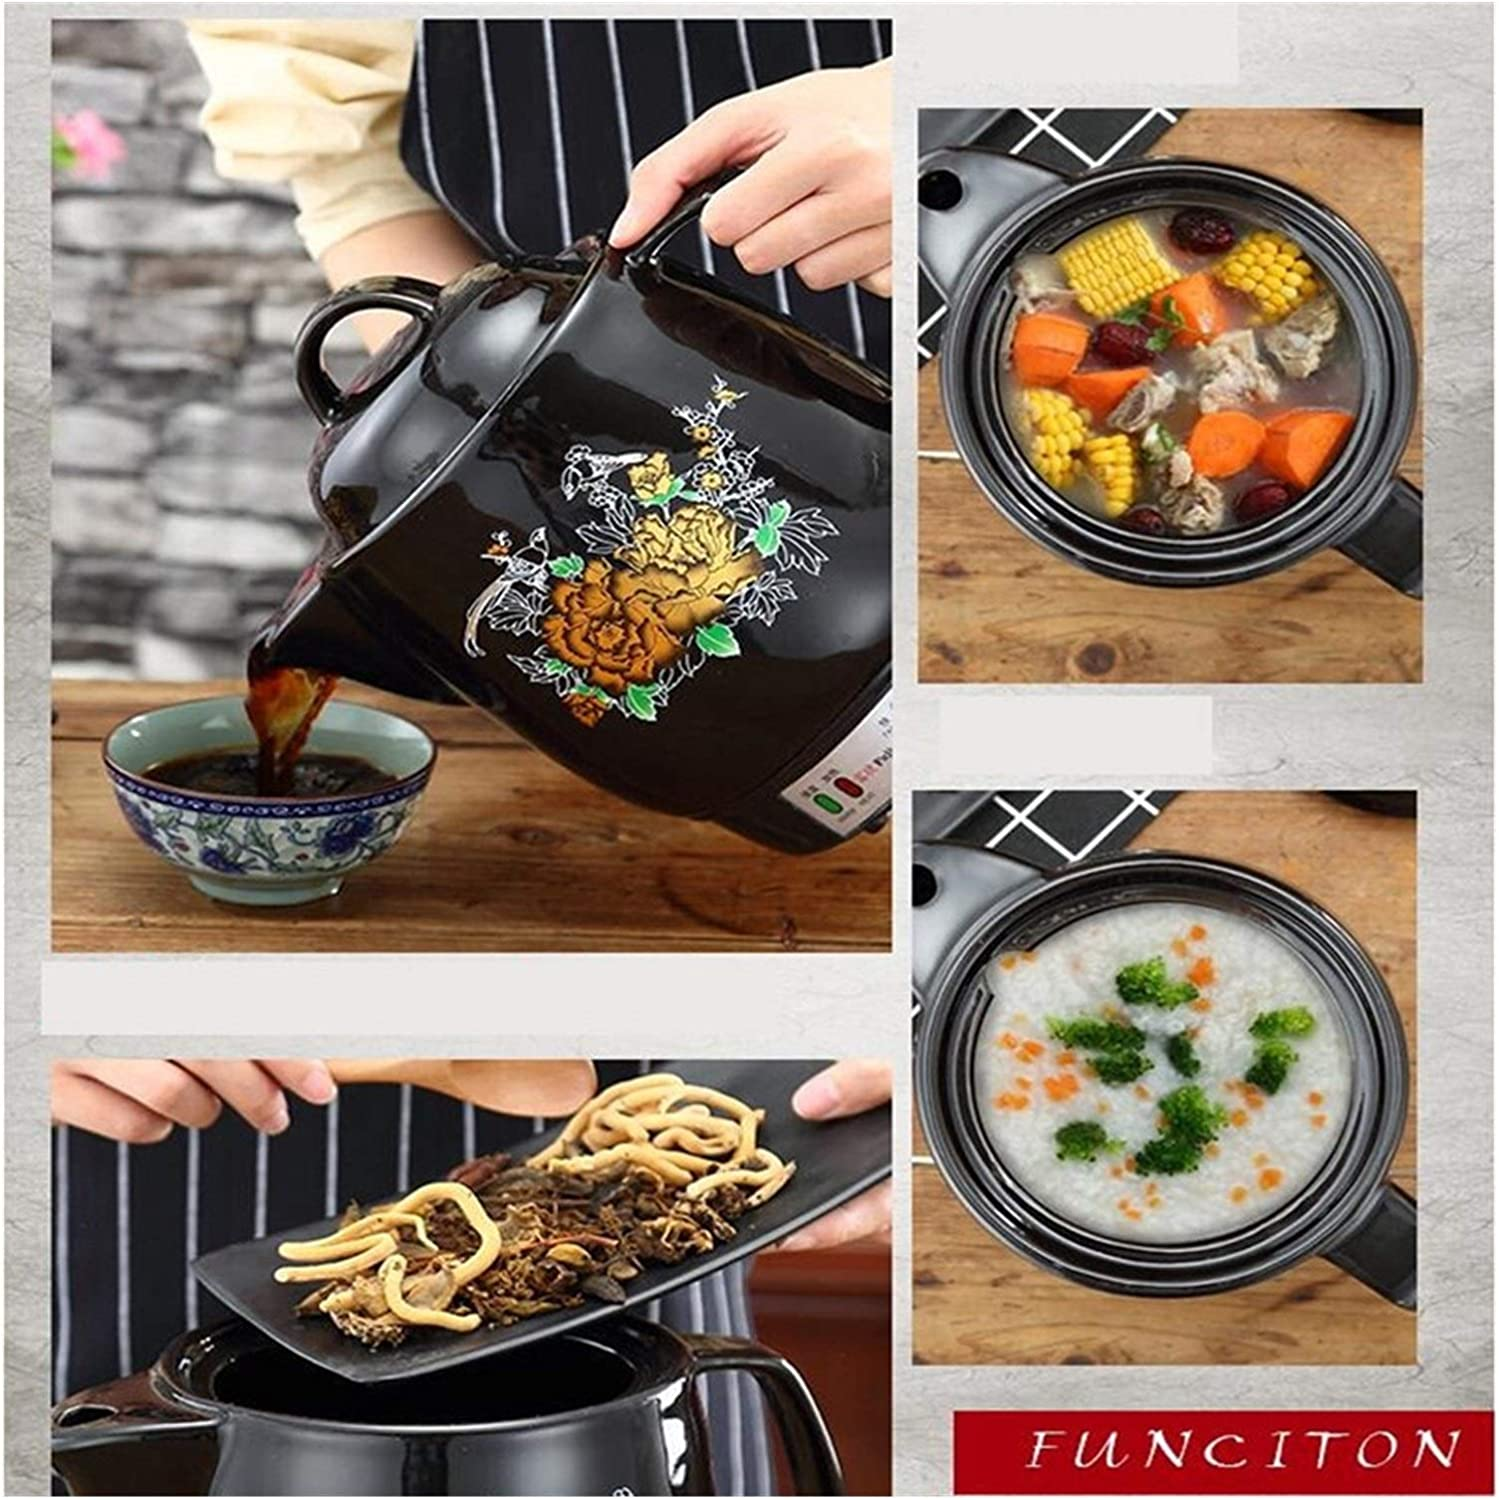 Hzdmfgs Kettle 220V Household Electric Kettle Automatic Chinese Medicine Stewing Kettle Pot eramic Decocting Herb Medicine Multi Cooker (Color : 3L) 4l